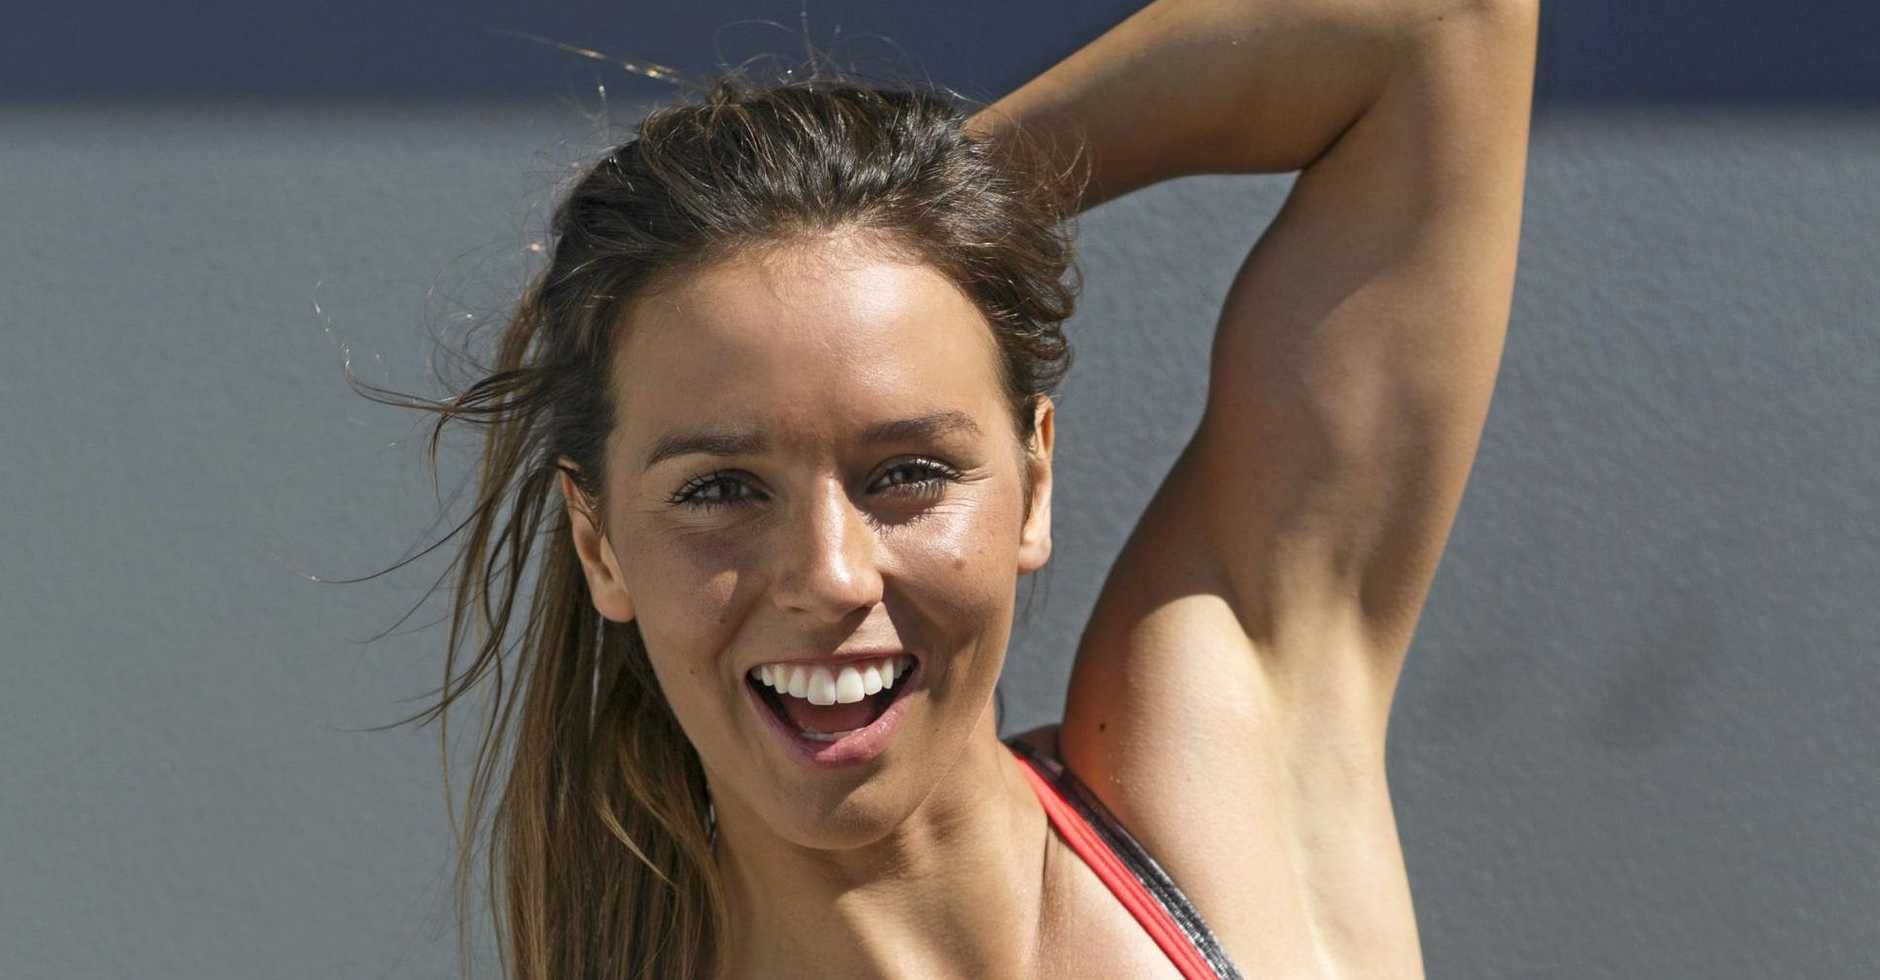 Sally Fitzgibbons has joined us in our quest for a healthier region.